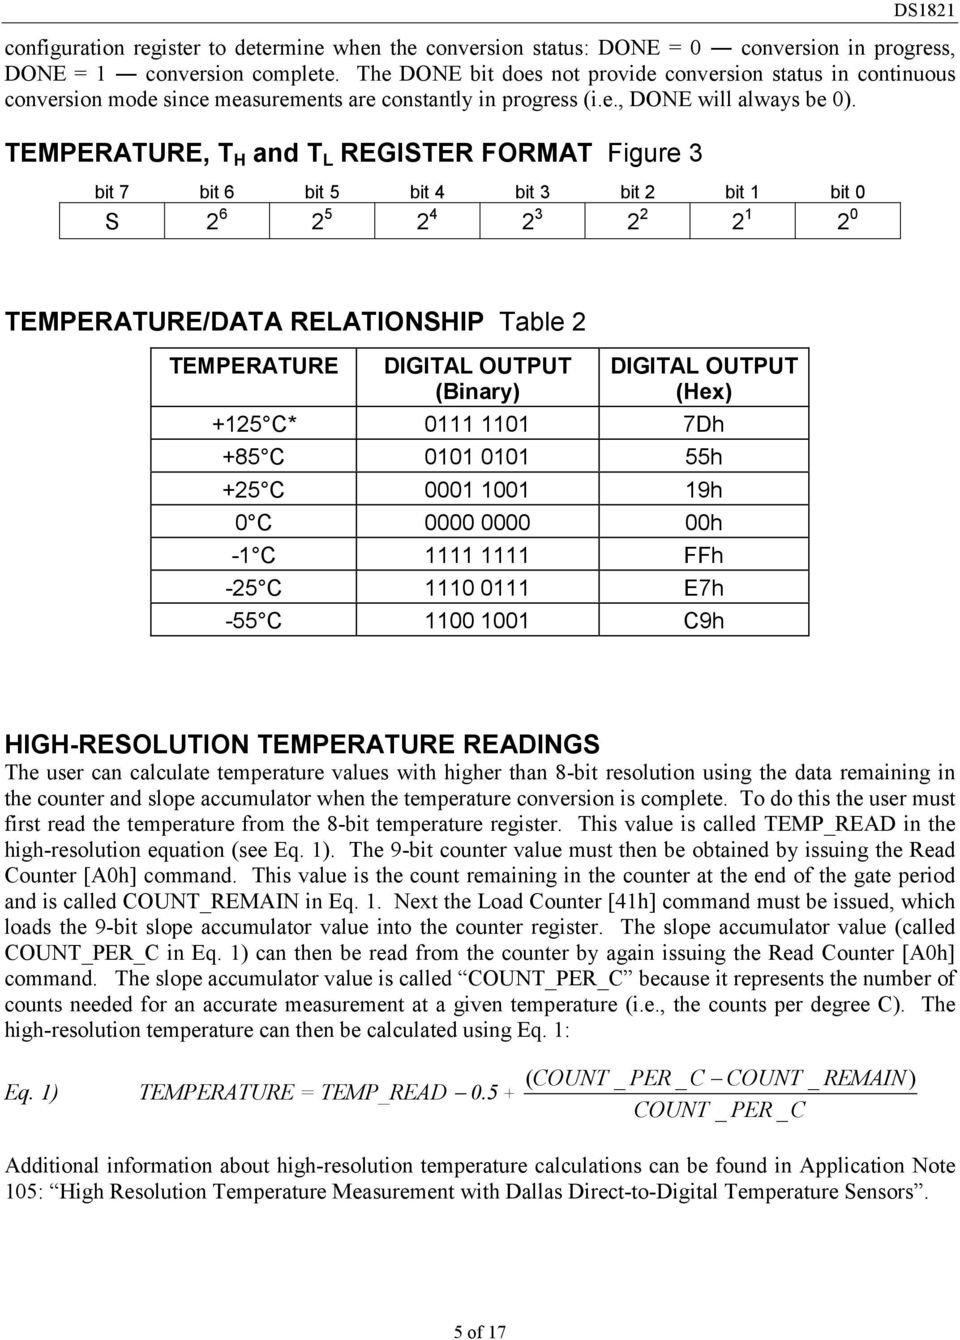 TEMPERATURE, T H and T L REGISTER FORMAT Figure 3 bit 7 bit 6 bit 5 bit 4 bit 3 bit 2 bit 1 bit 0 S 2 6 2 5 2 4 2 3 2 2 2 1 2 0 TEMPERATURE/DATA RELATIONSHIP Table 2 TEMPERATURE DIGITAL OUTPUT